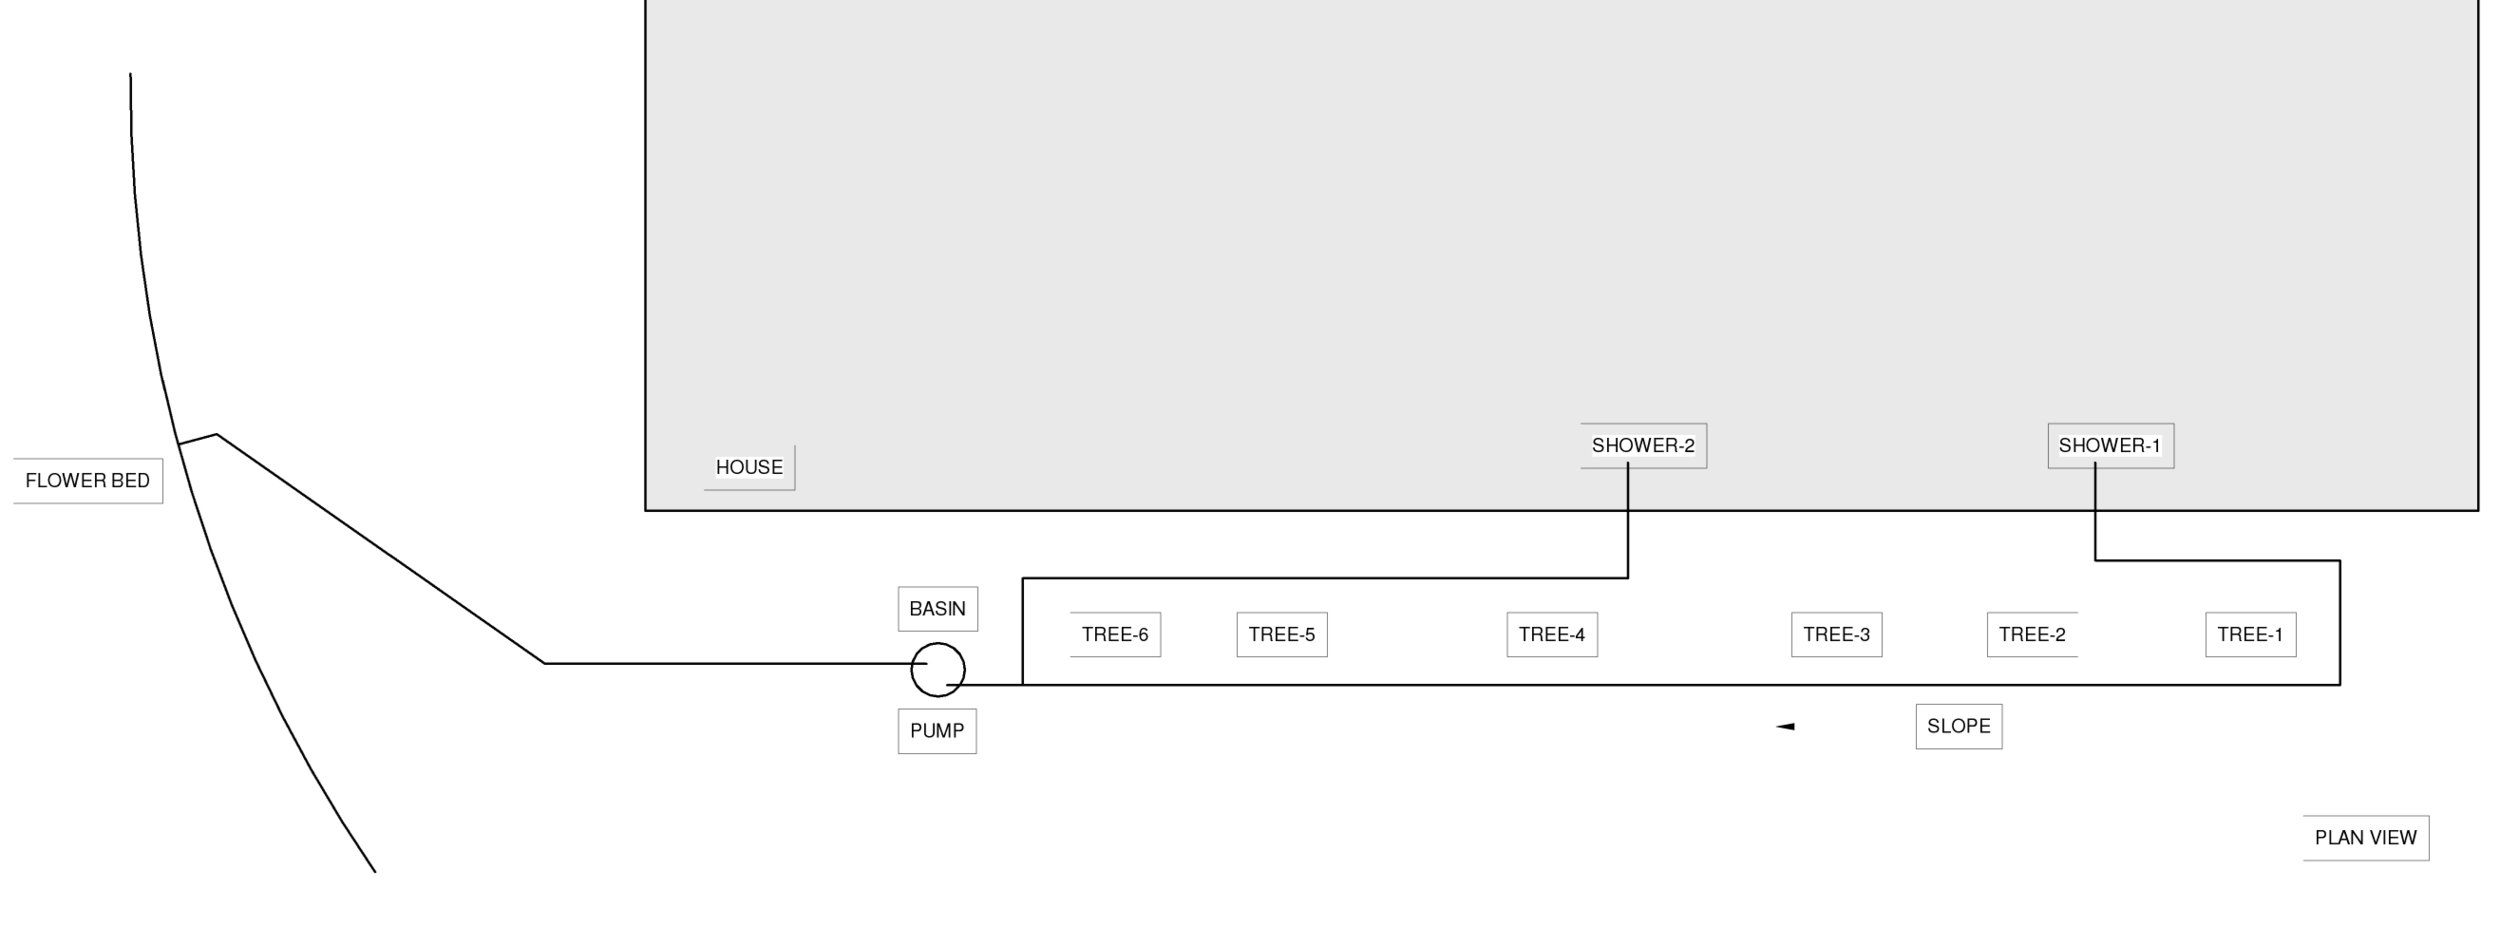 A plan view of the system